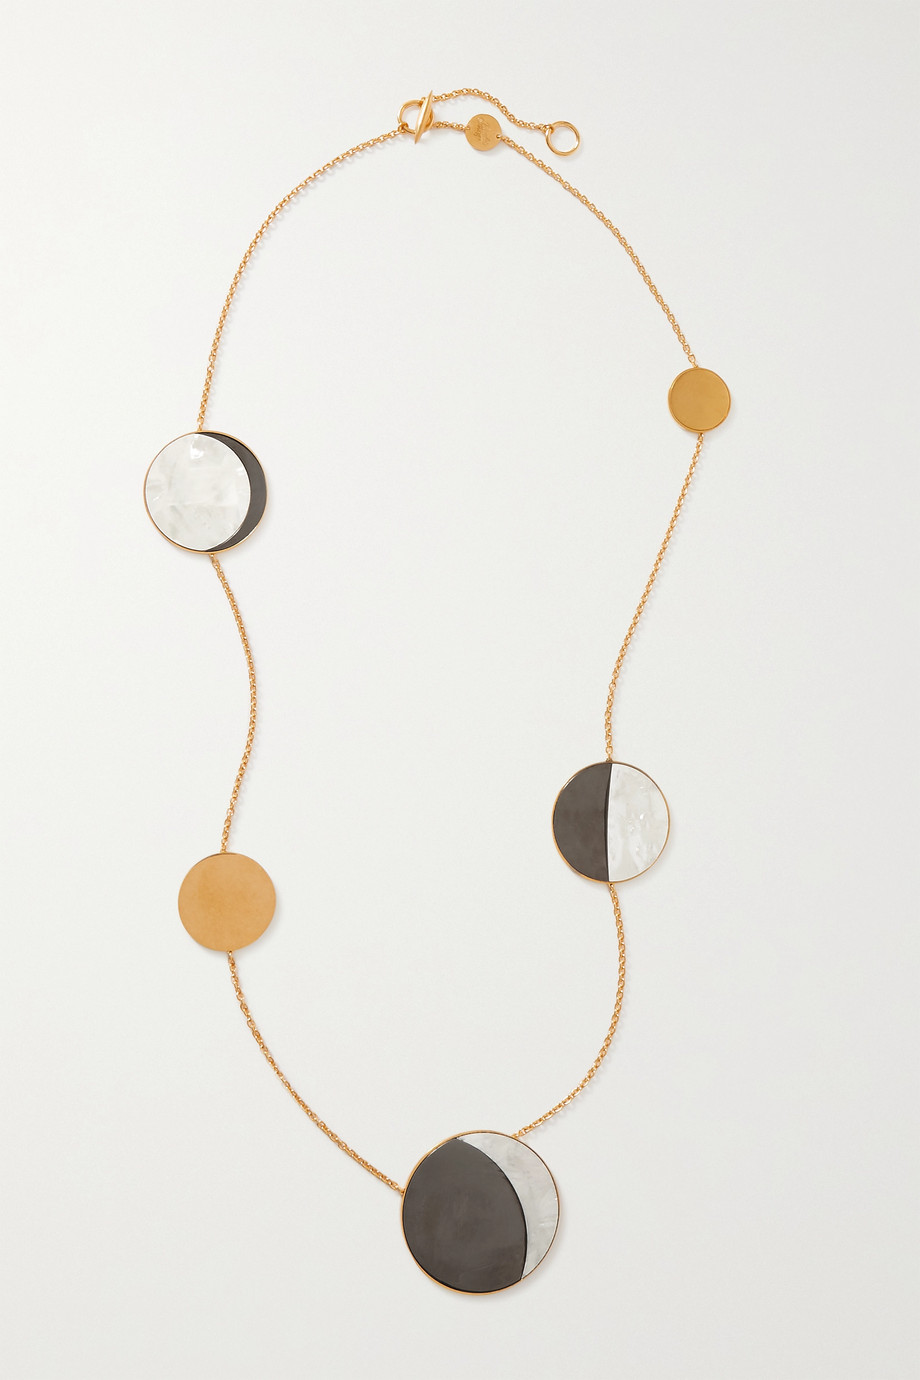 LOEWE + Paula's Ibiza Ellipse gold-tone, acrylic and mother-of-pearl necklace